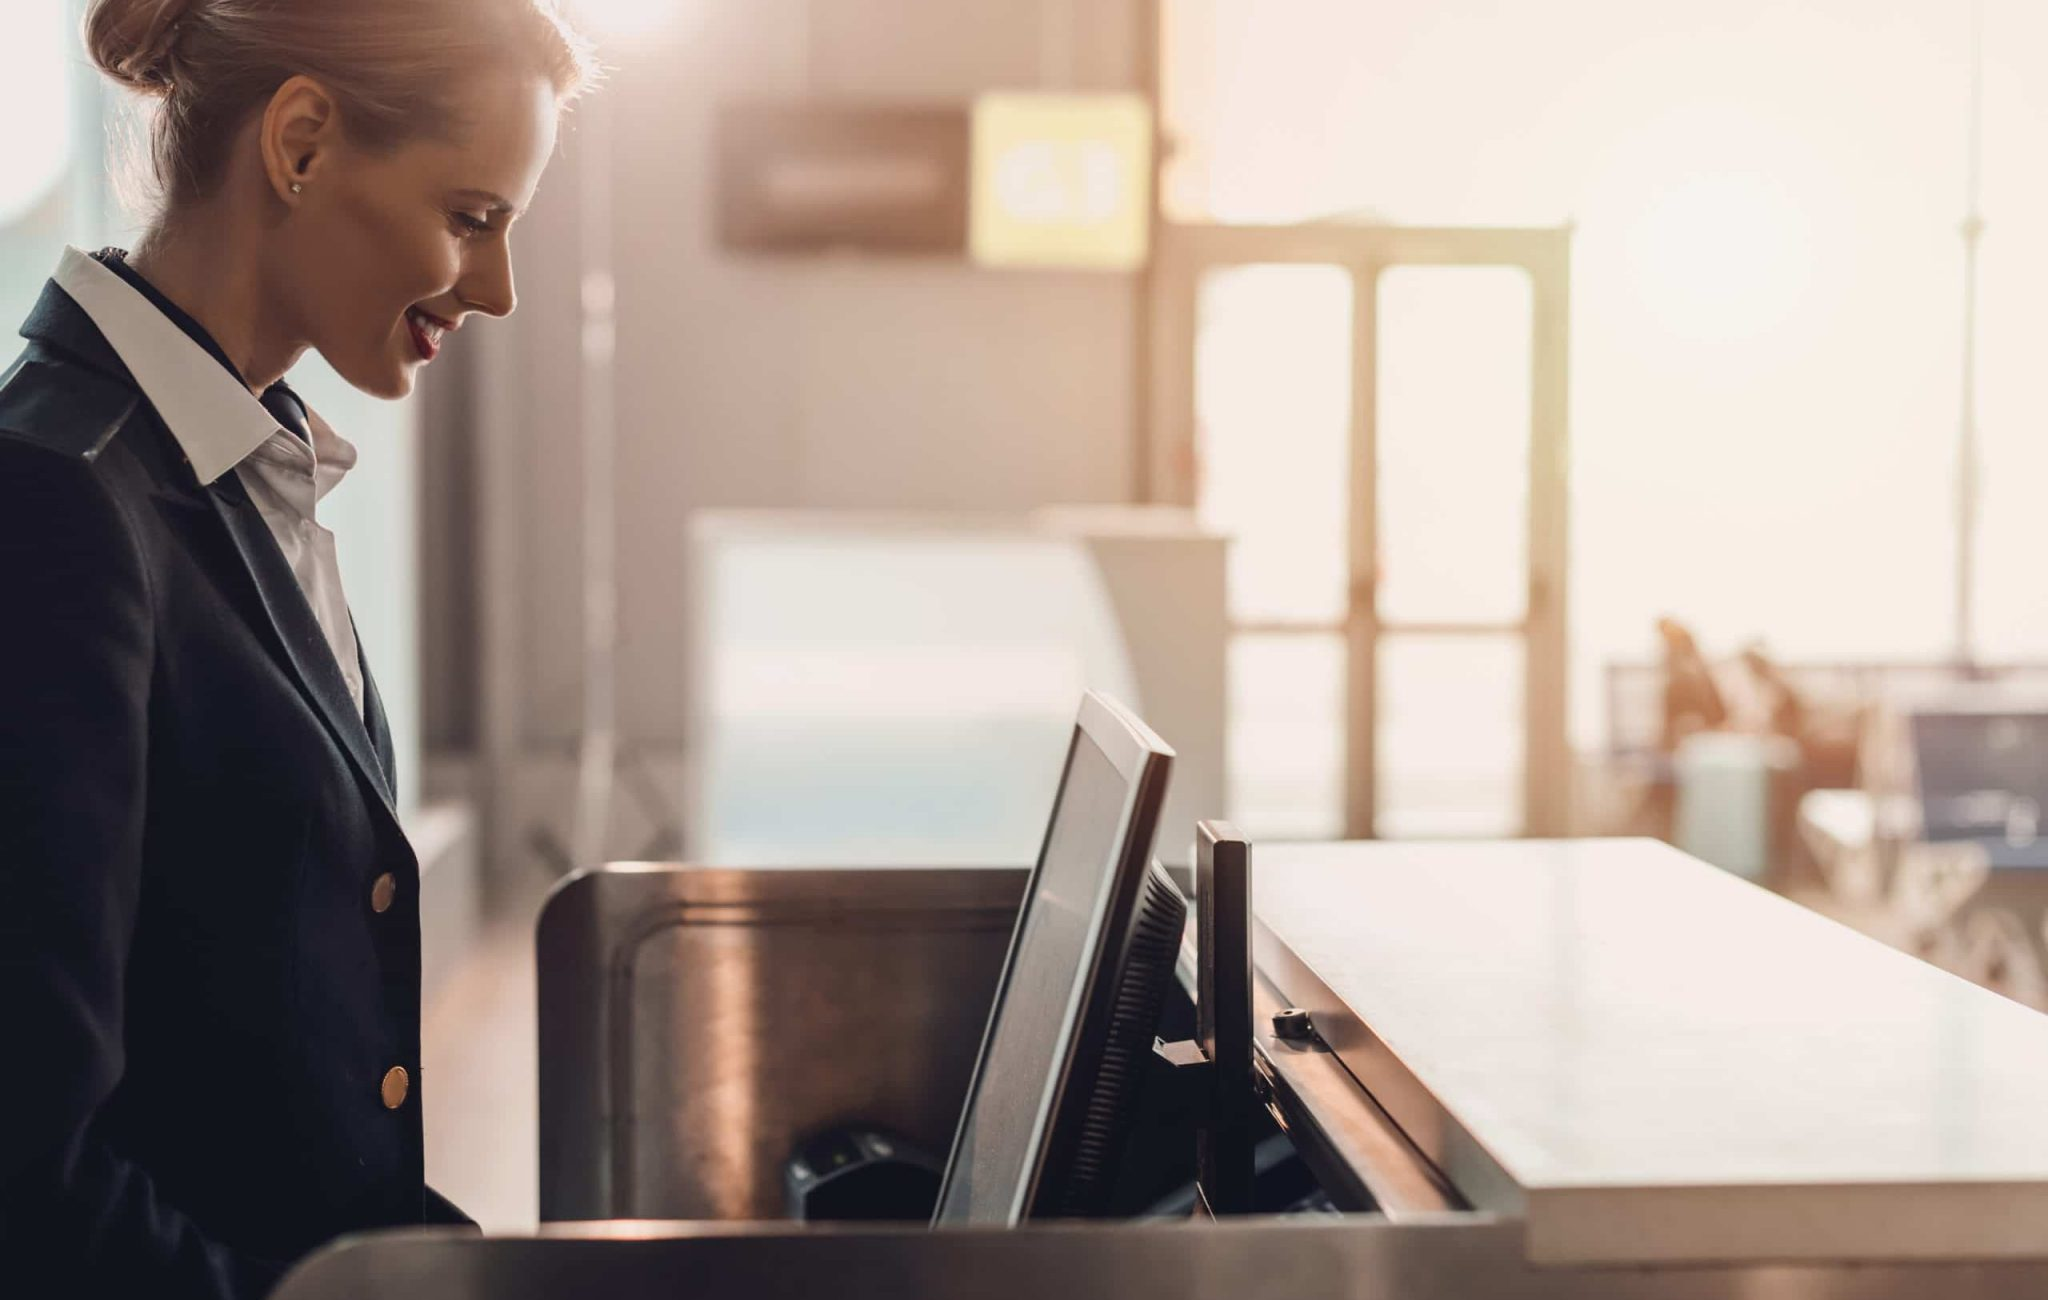 Side,View,Of,Attractive,Young,Airport,Worker,At,Workplace,At